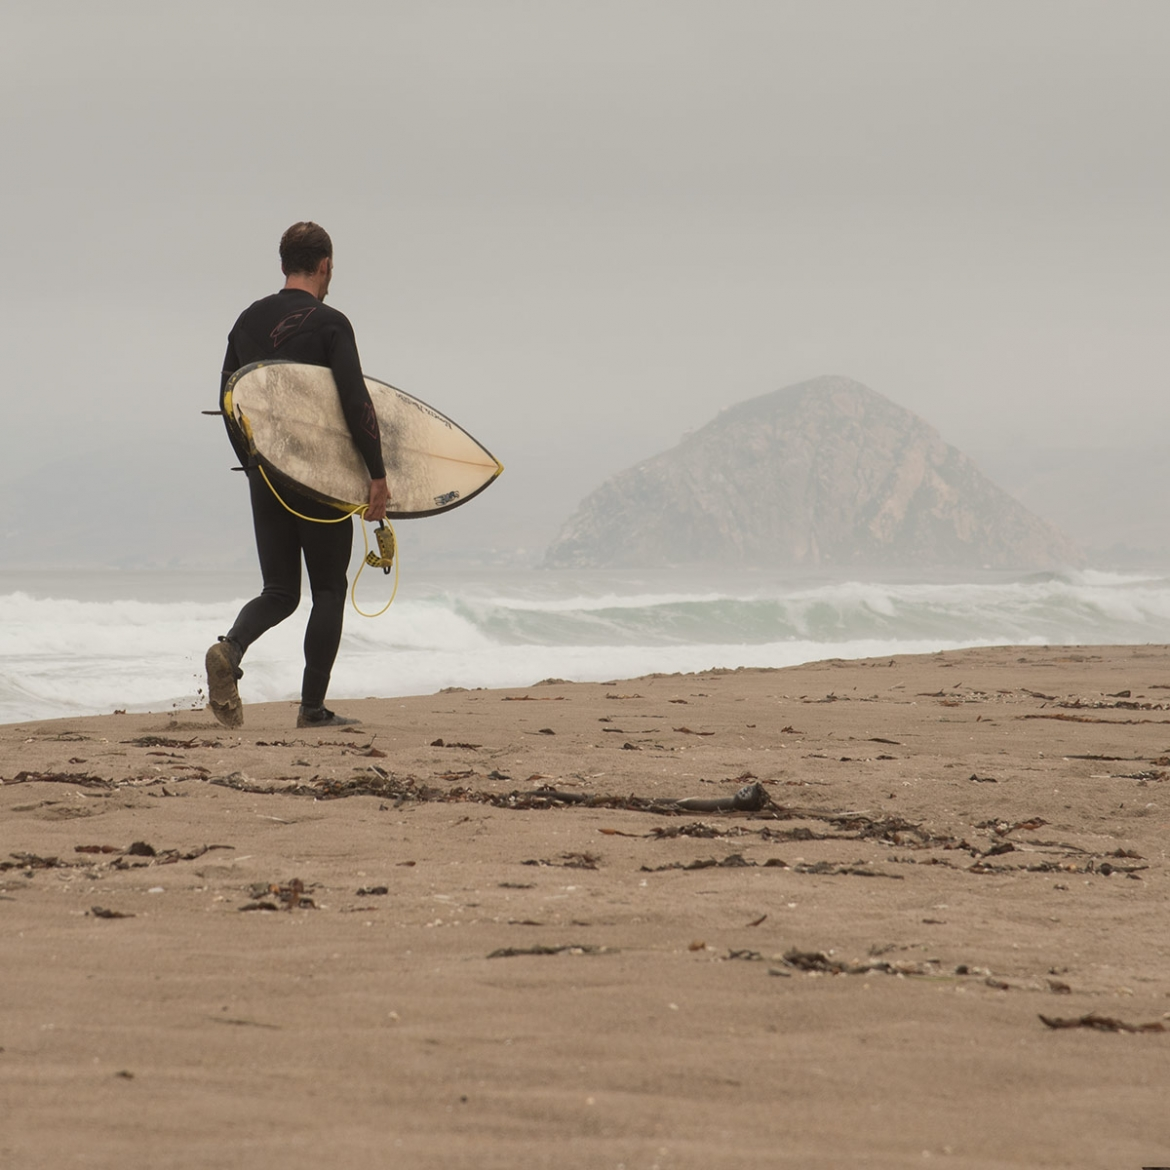 Surfer and Morro Rock